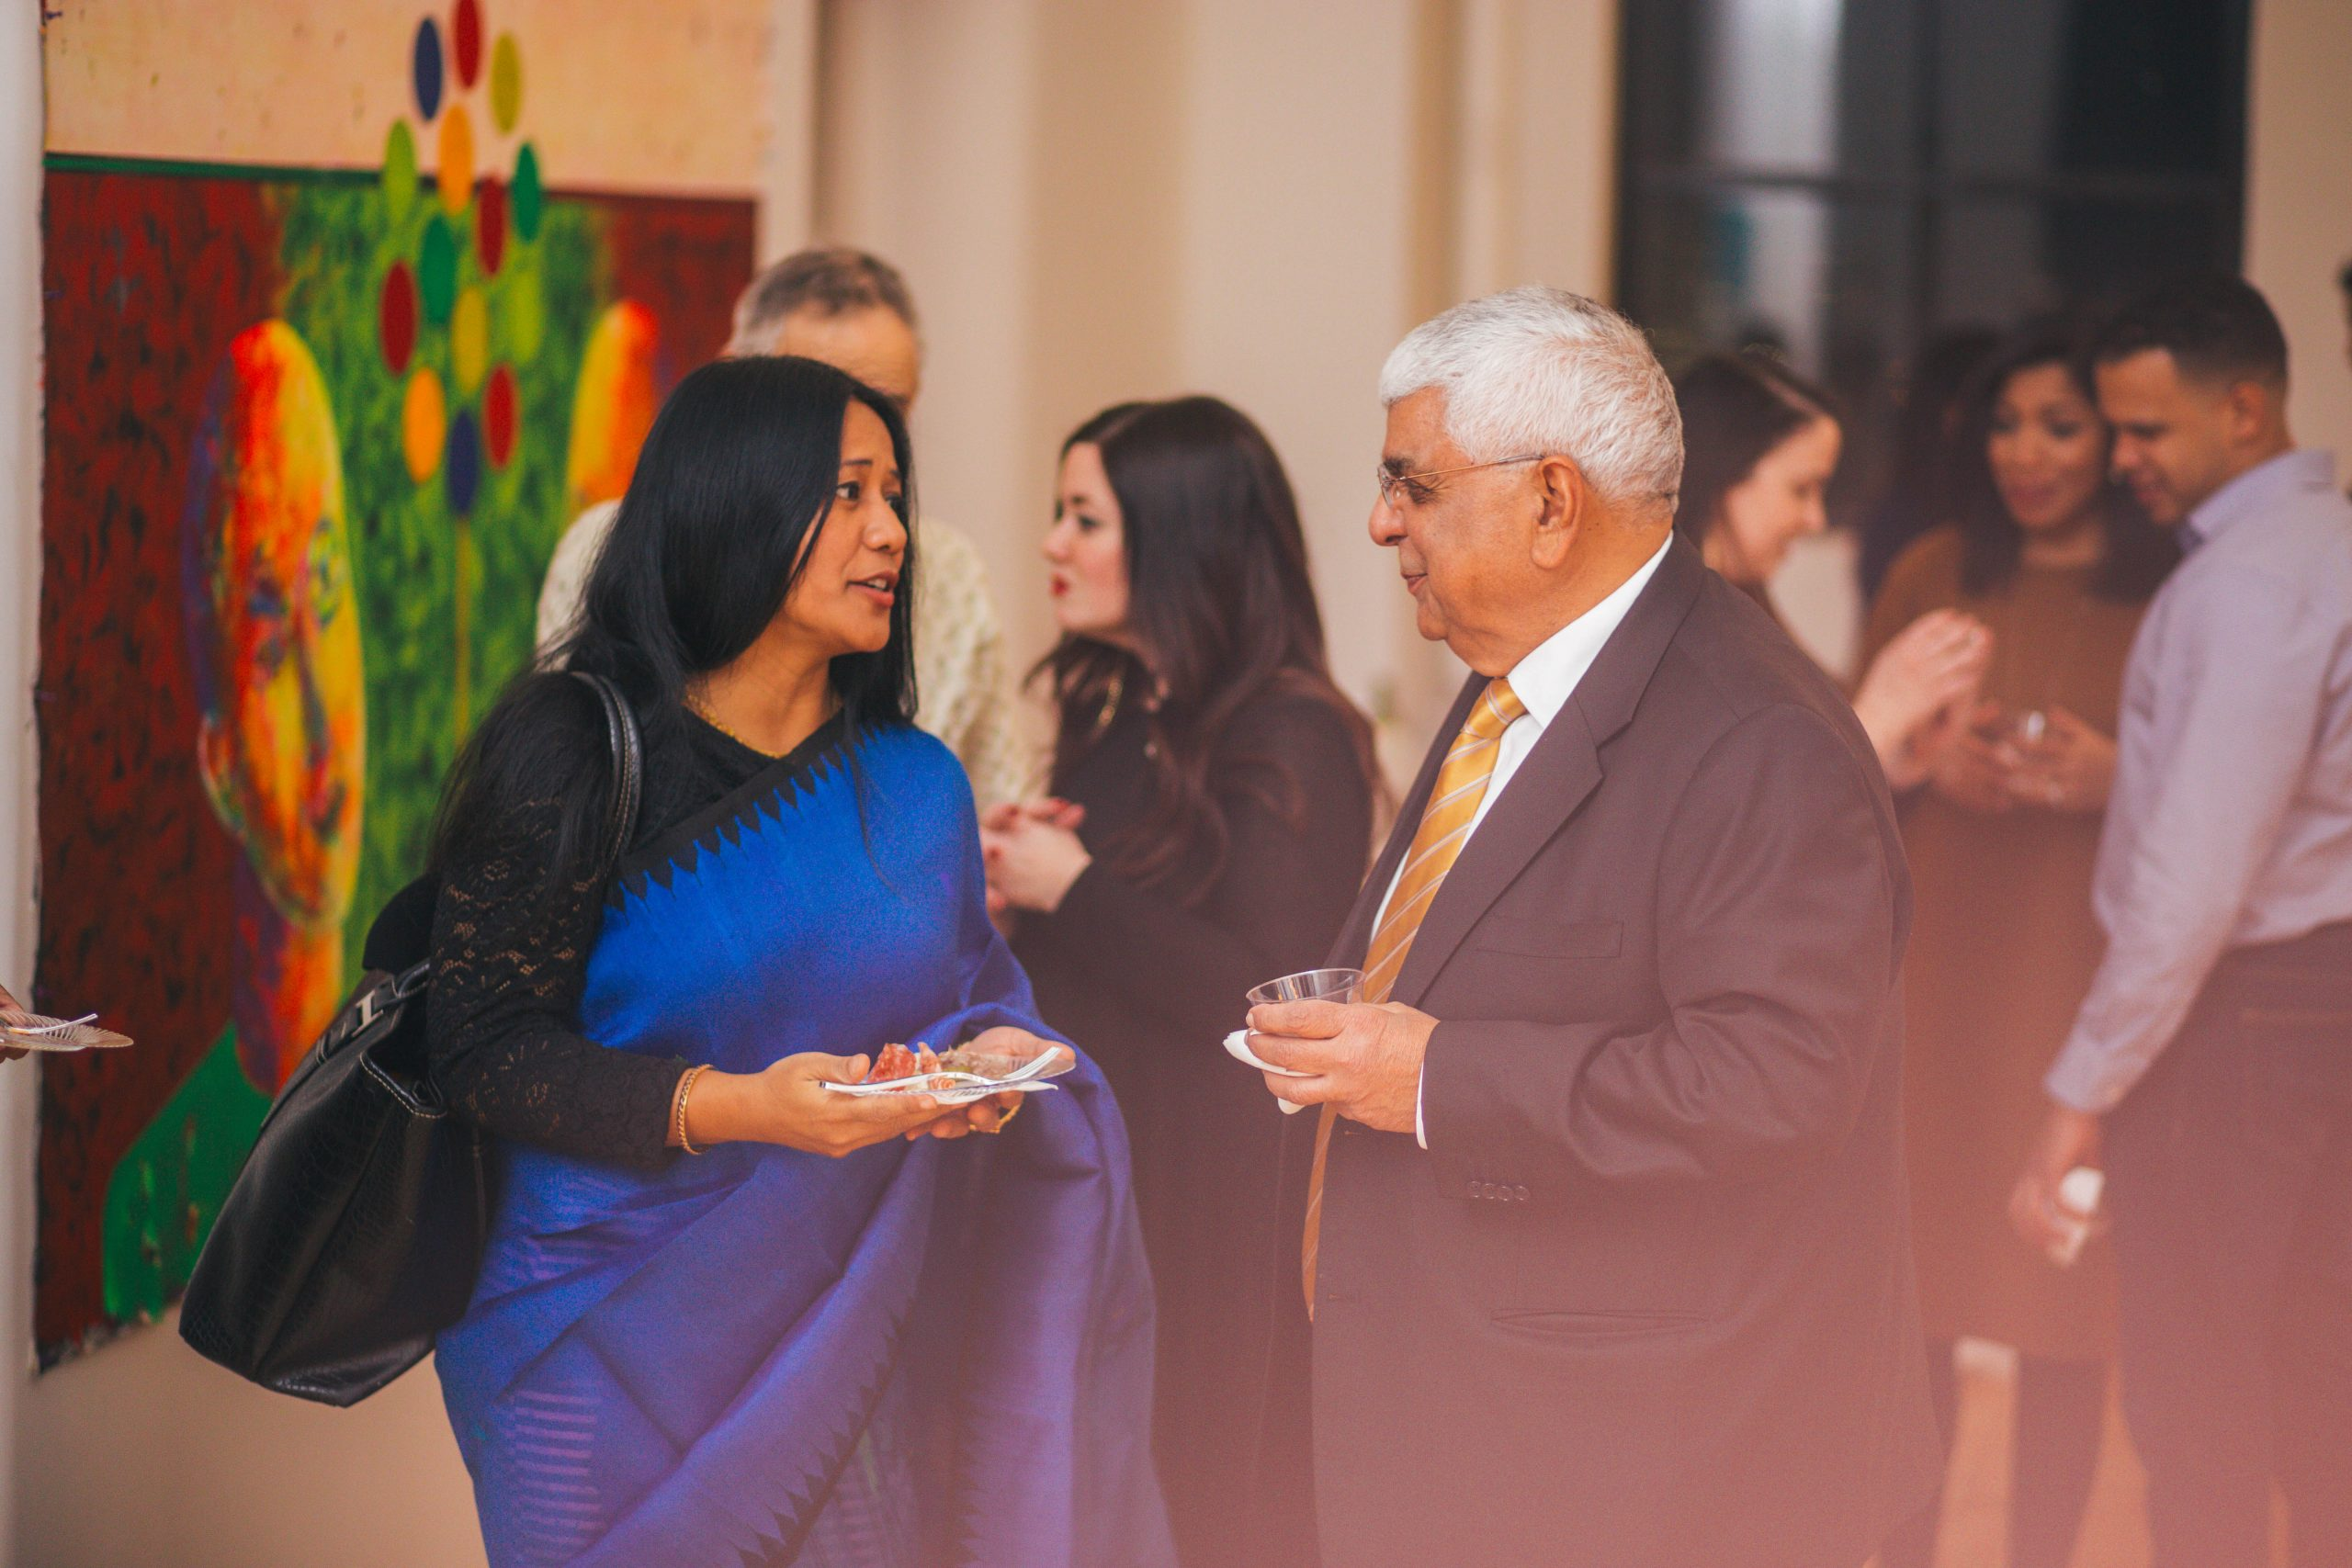 AFI artist, writer, and civil rights activist Binalakshmi Nepram speaks with Board Chair Dinesh Khosla. Westbeth Artists Housing, December 2017. Photography by Joshua Carrigan.